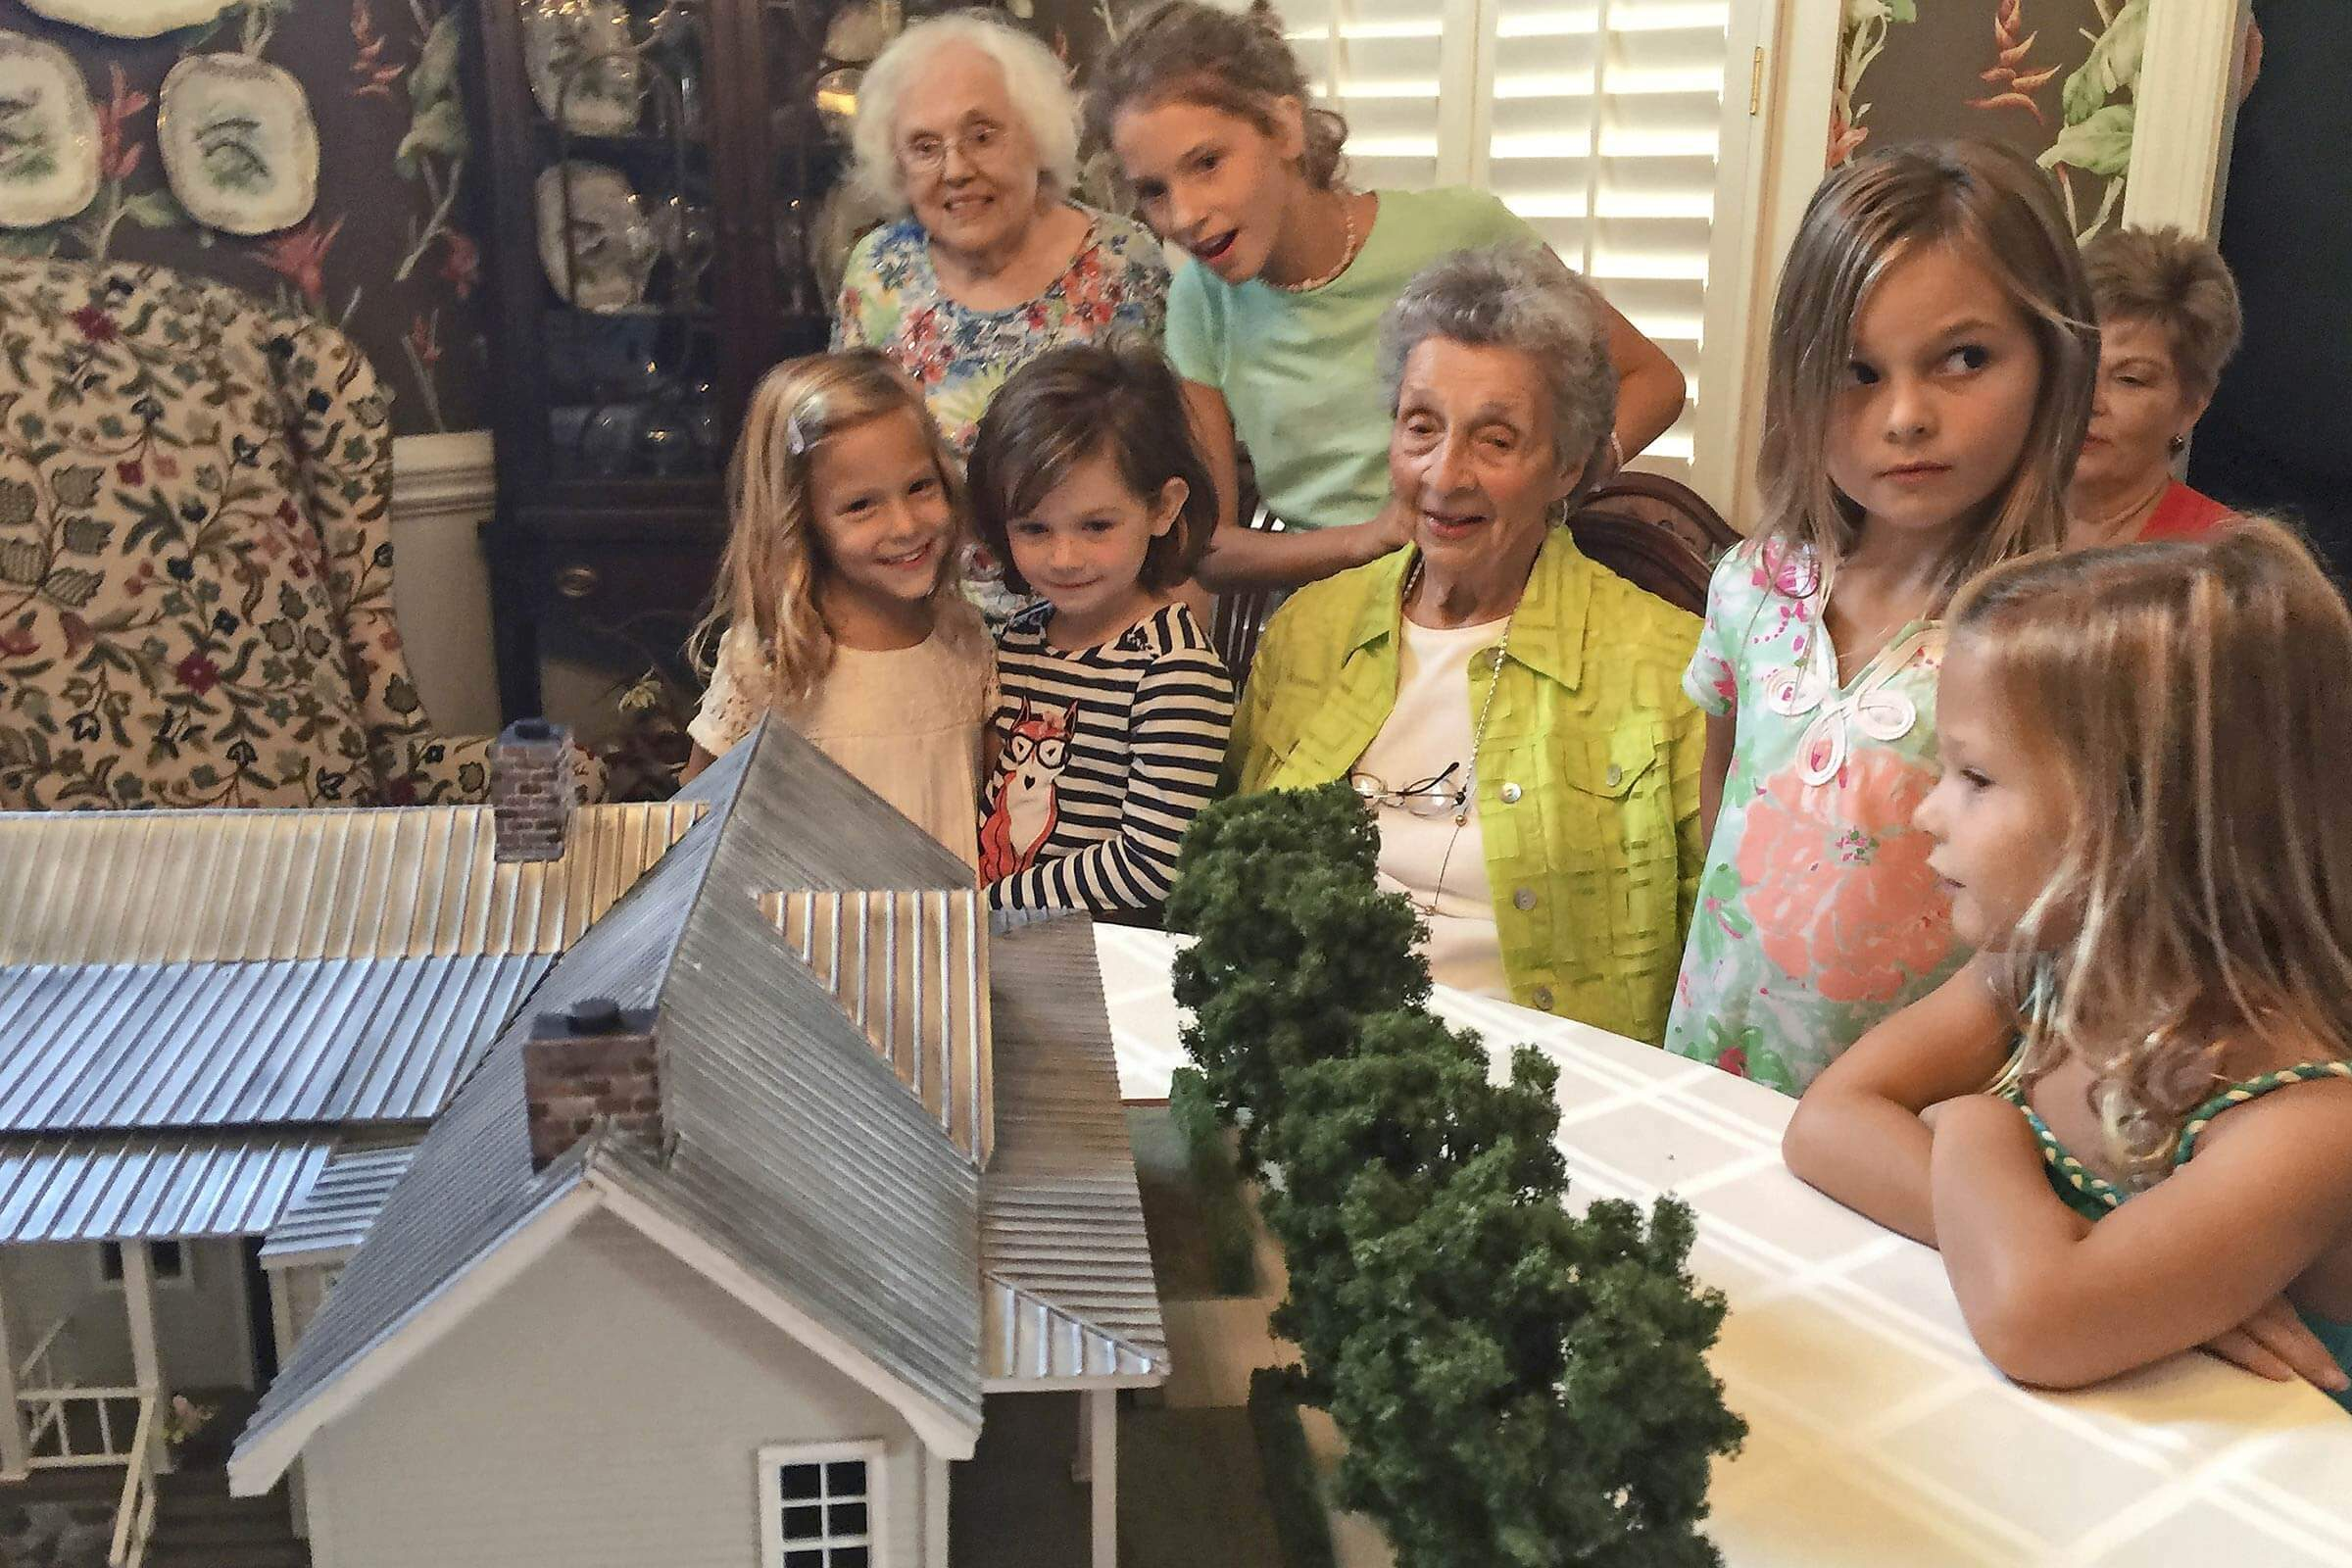 This 90 Year Old Was Finally Reunited With Her Childhood Home